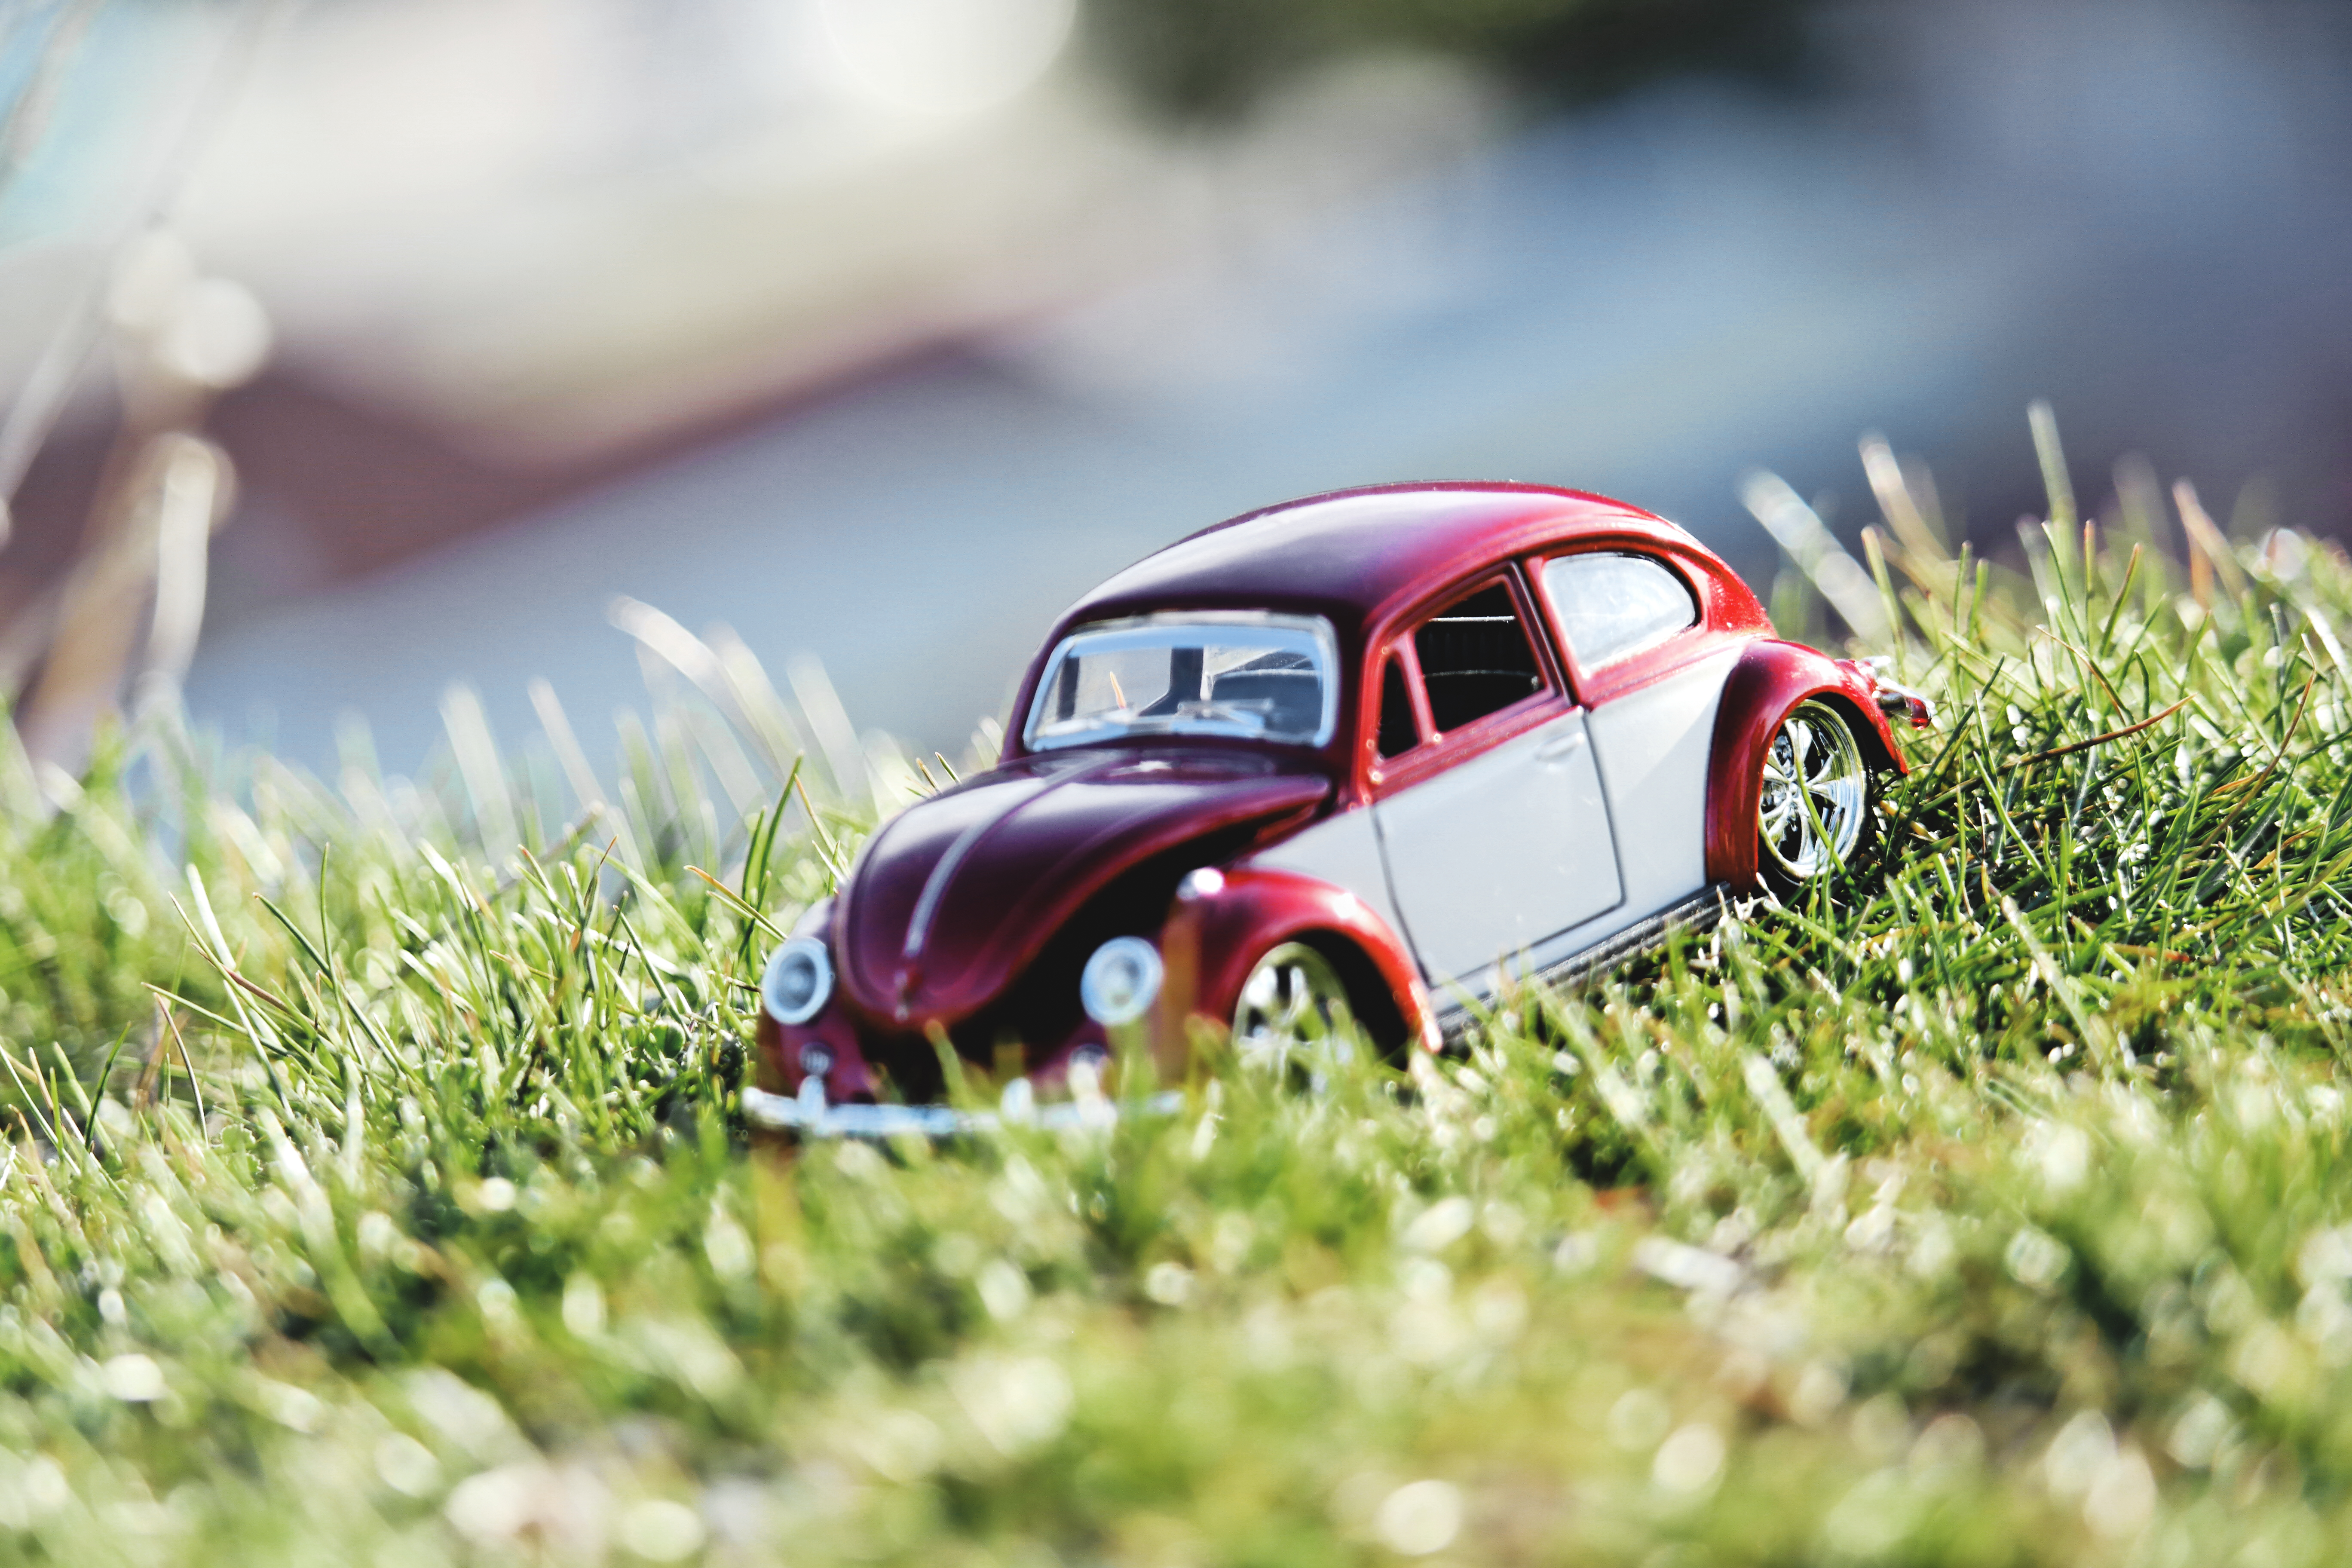 Red And White Beetle Car Toy On Grass Field In Bokeh Photography Free Stock Photo